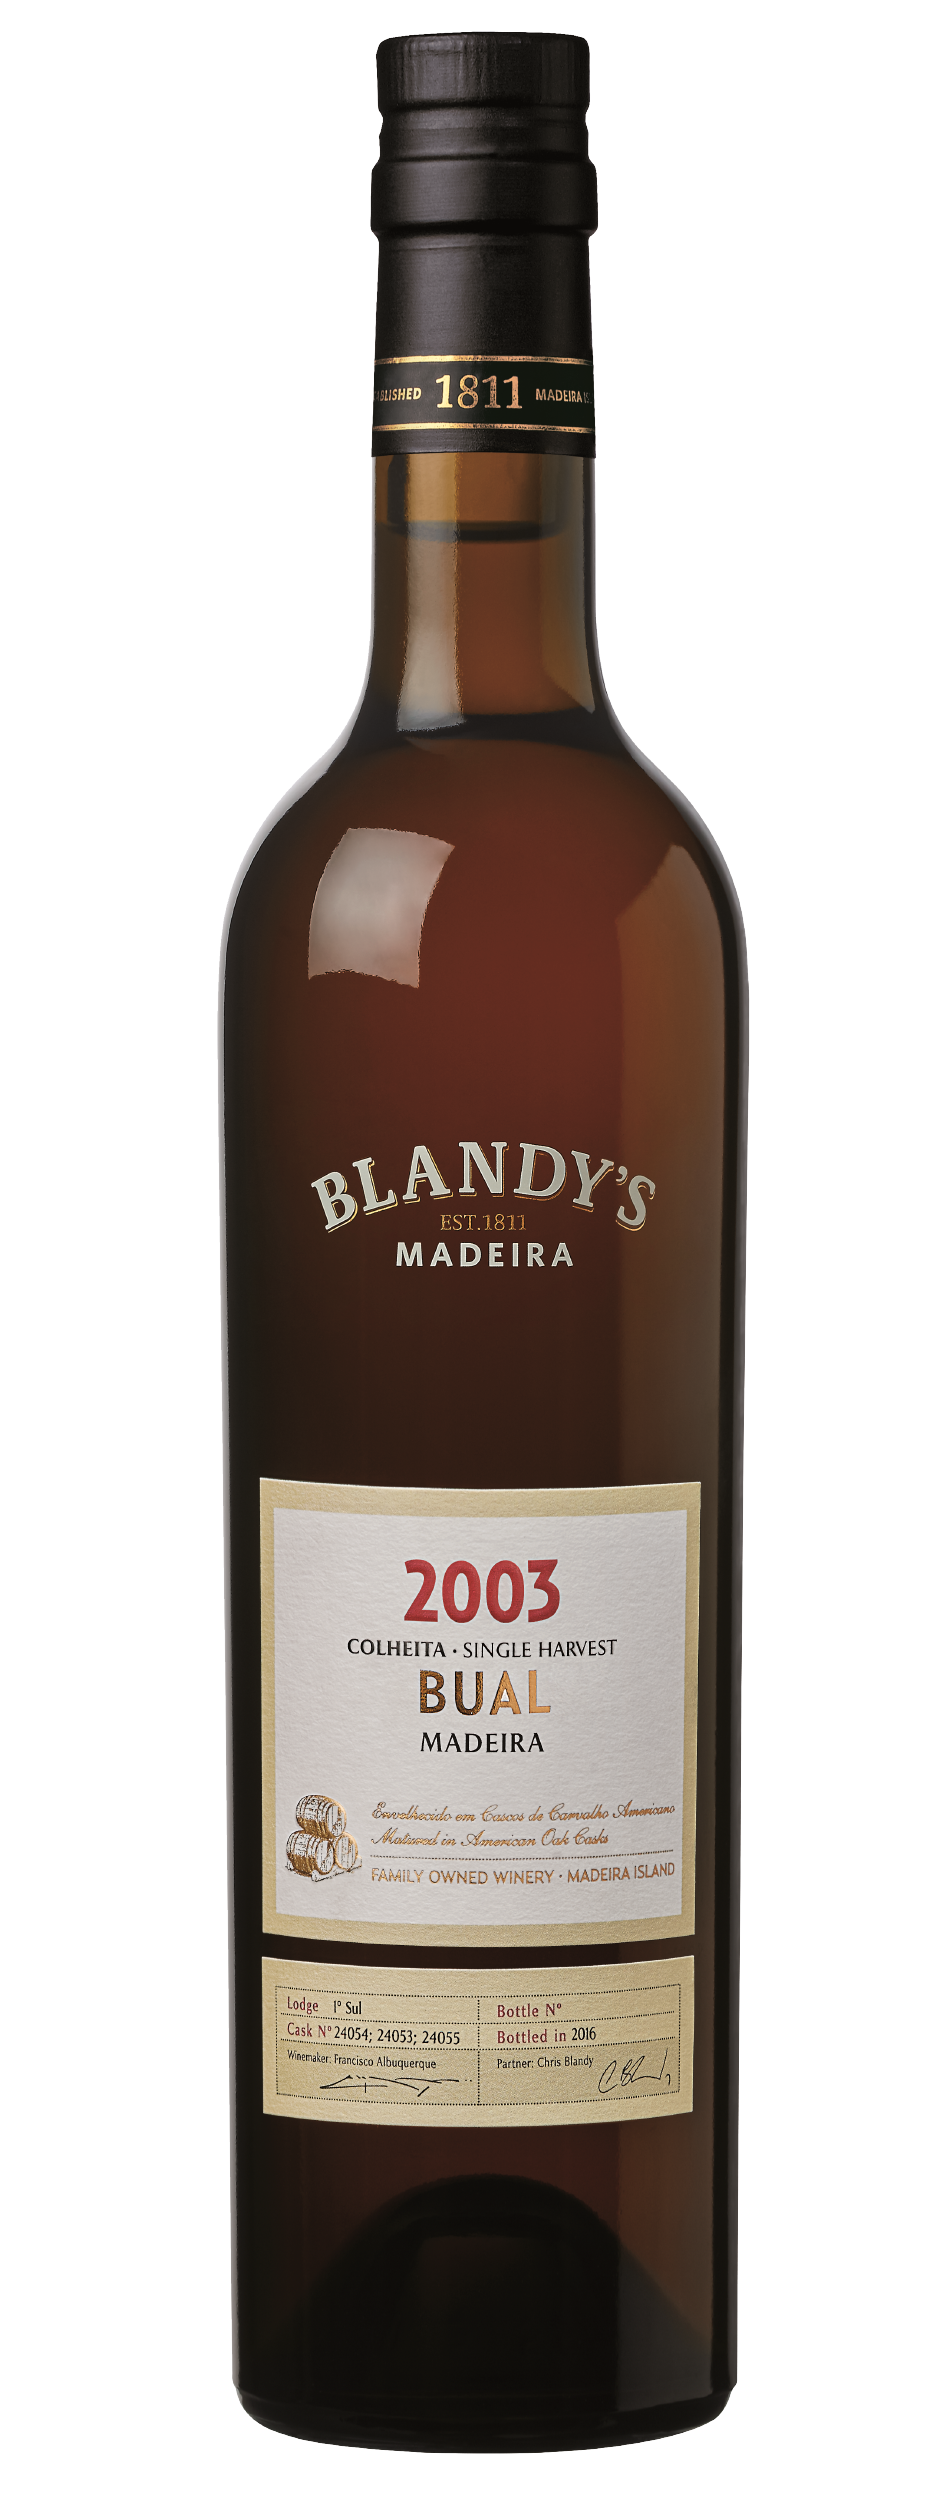 Product Image for BLANDY'S BUAL COLHEITA 2003